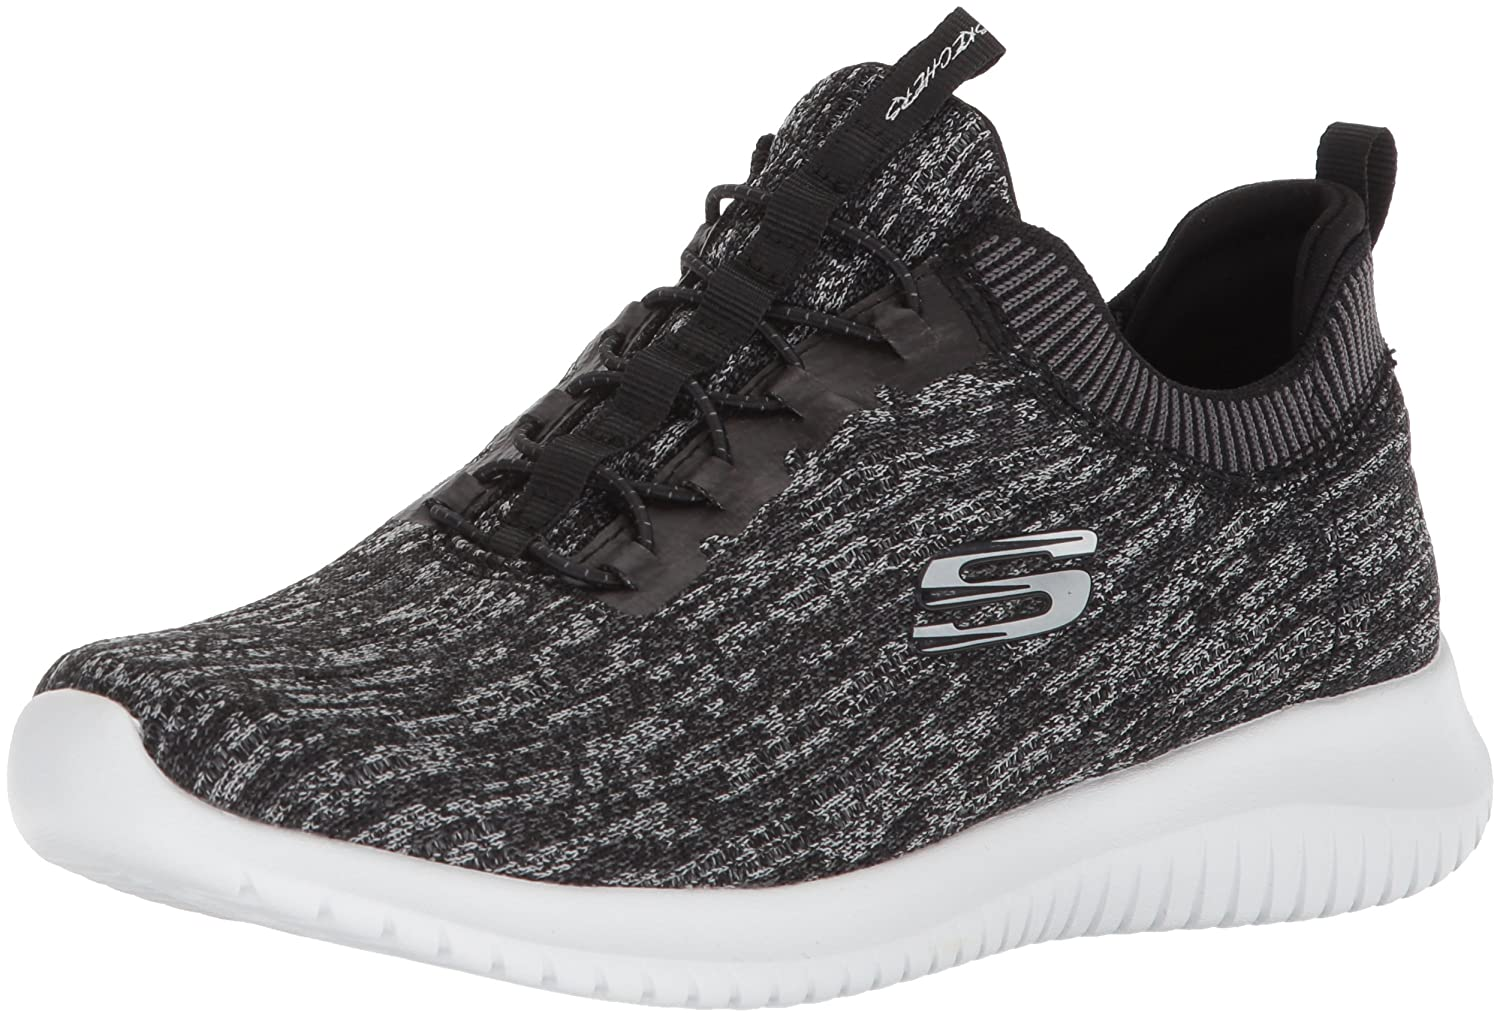 5b6dc3229b364 Skechers Women Ultra Flex-Bright Horizon Trainers  Amazon.co.uk  Shoes    Bags